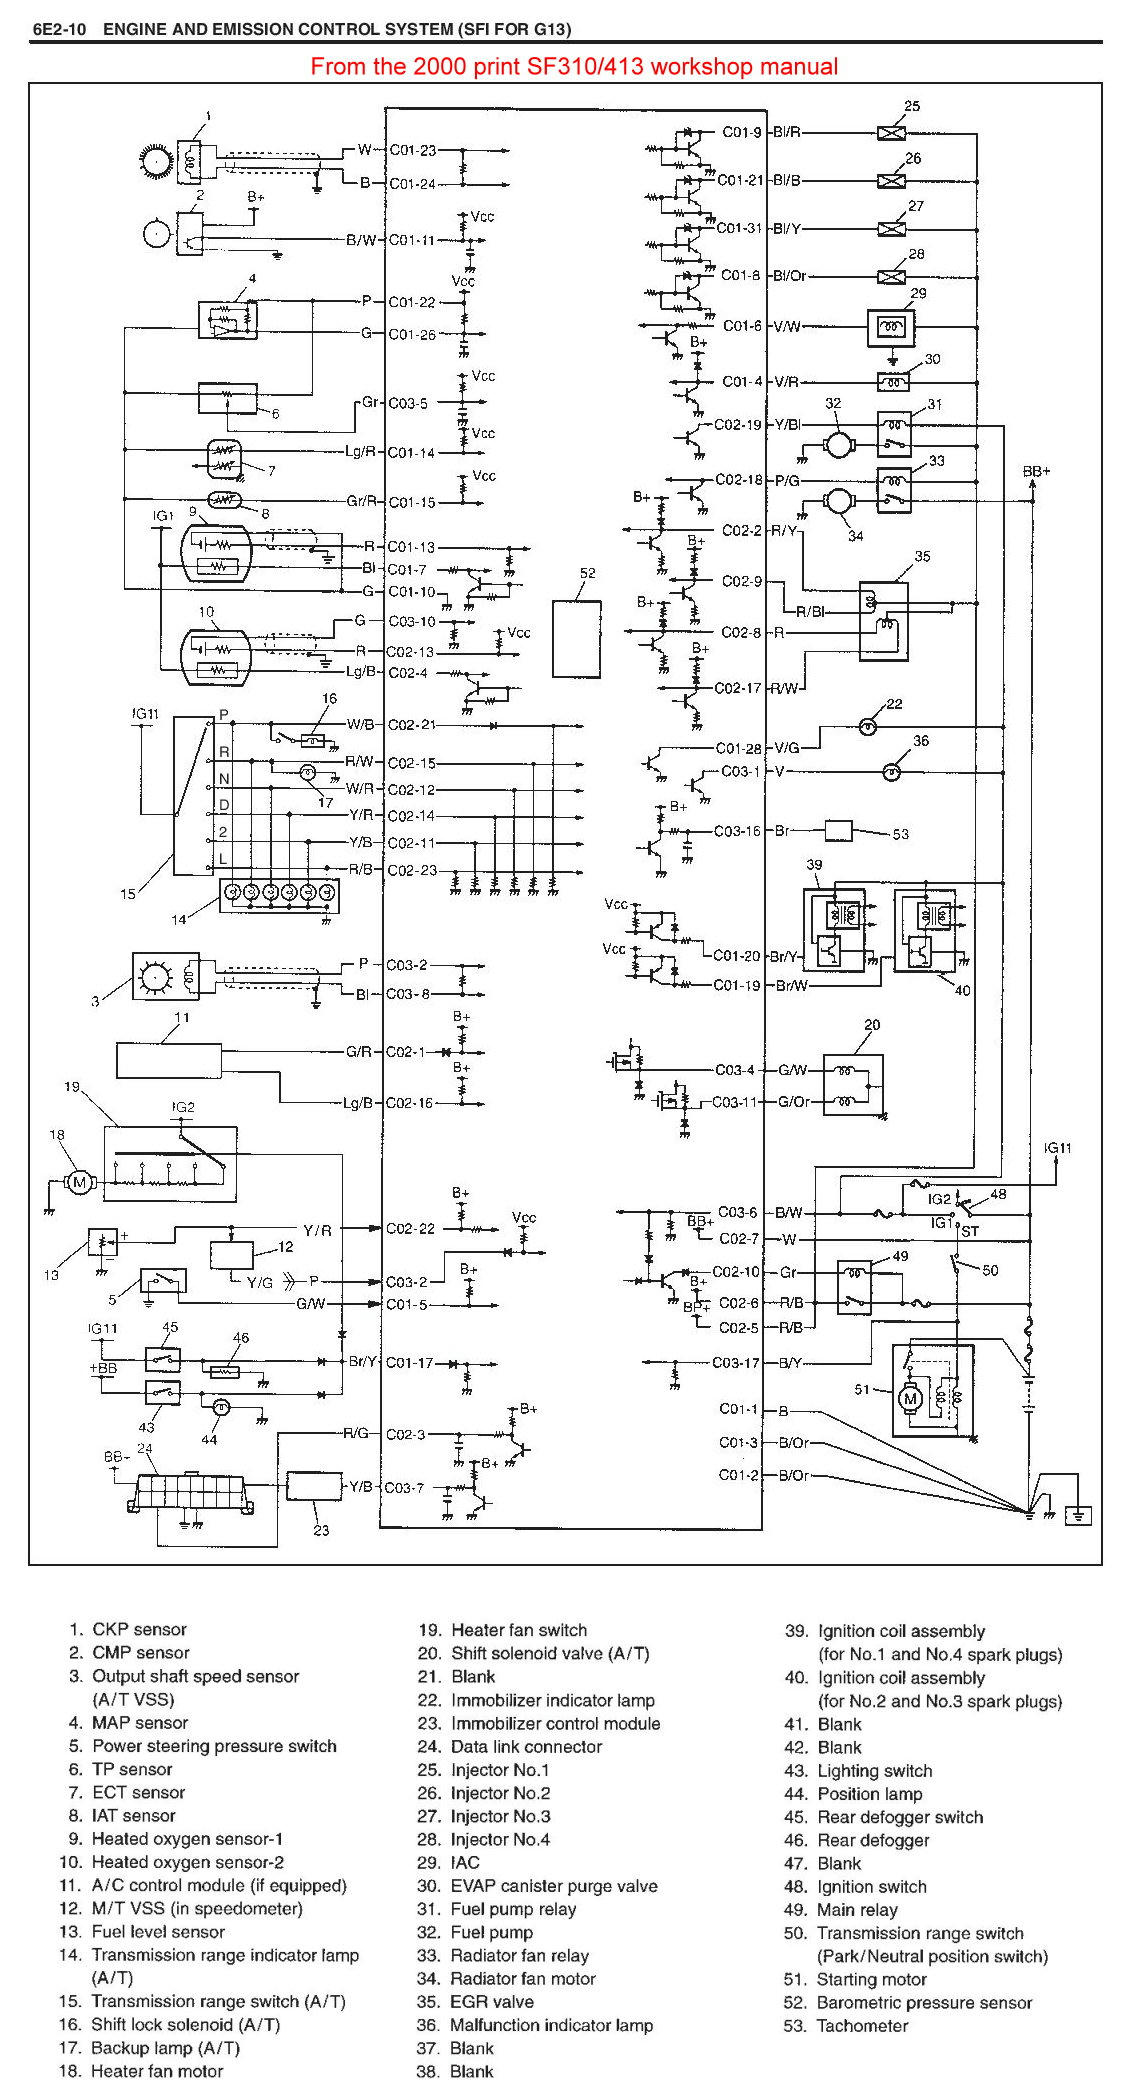 Injector Wiring Schematics (1999 Swift 1.3lt engine